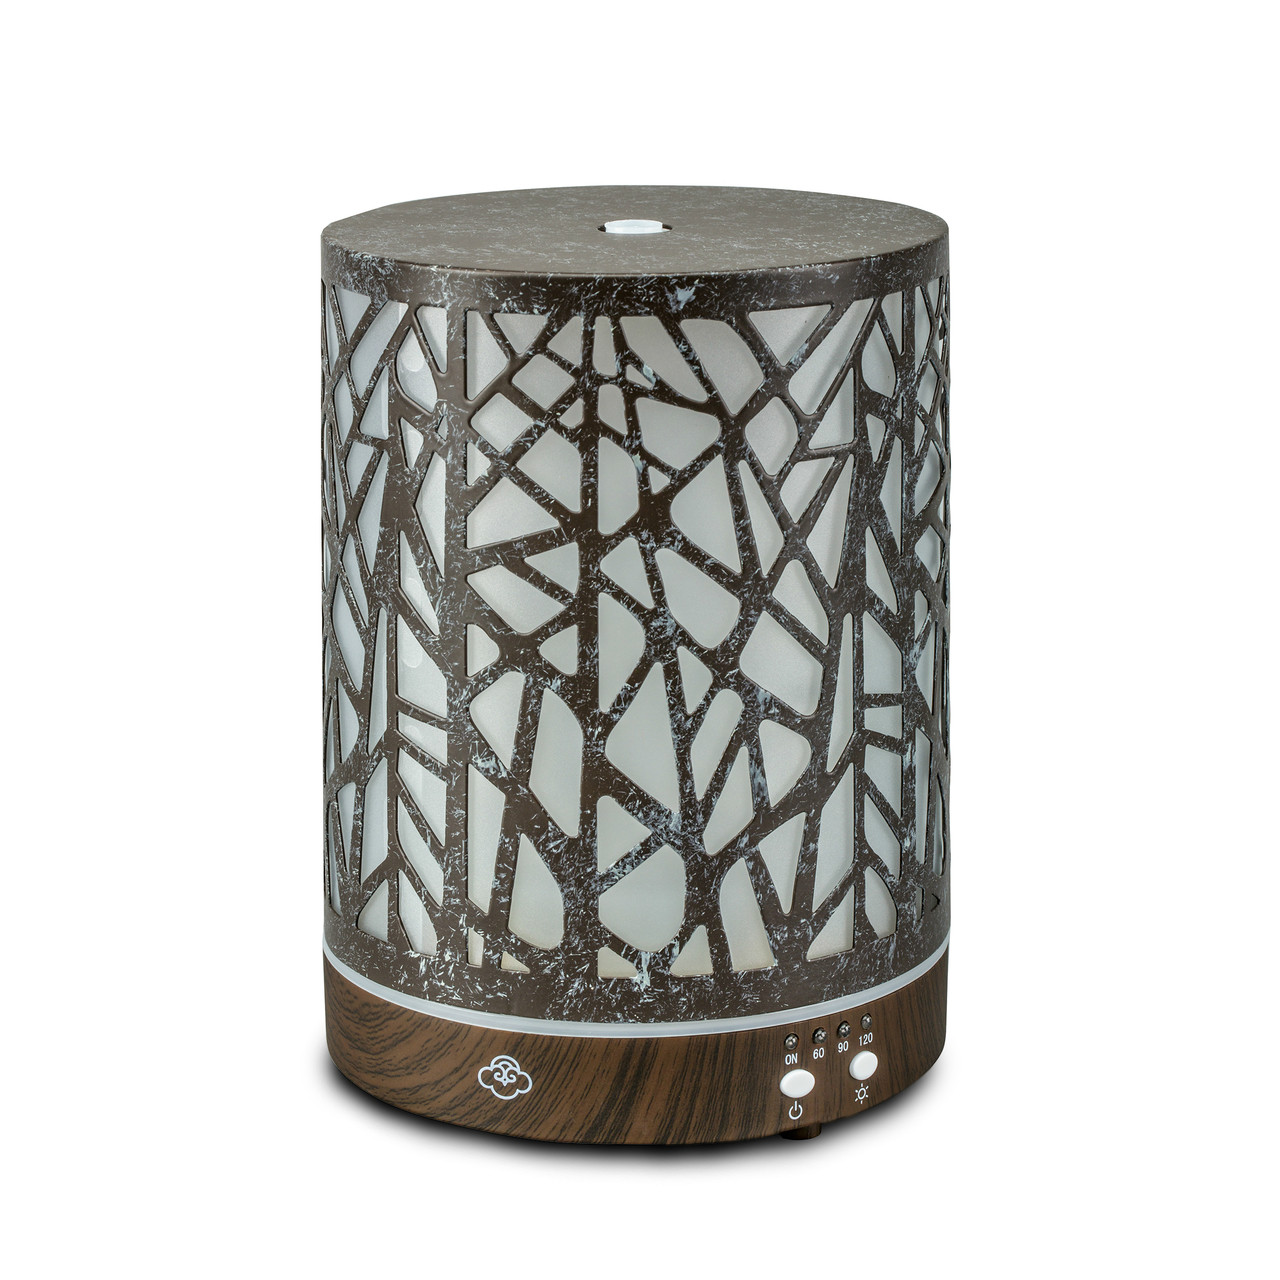 AROMATHERAPY DIFFUSER - FOREST